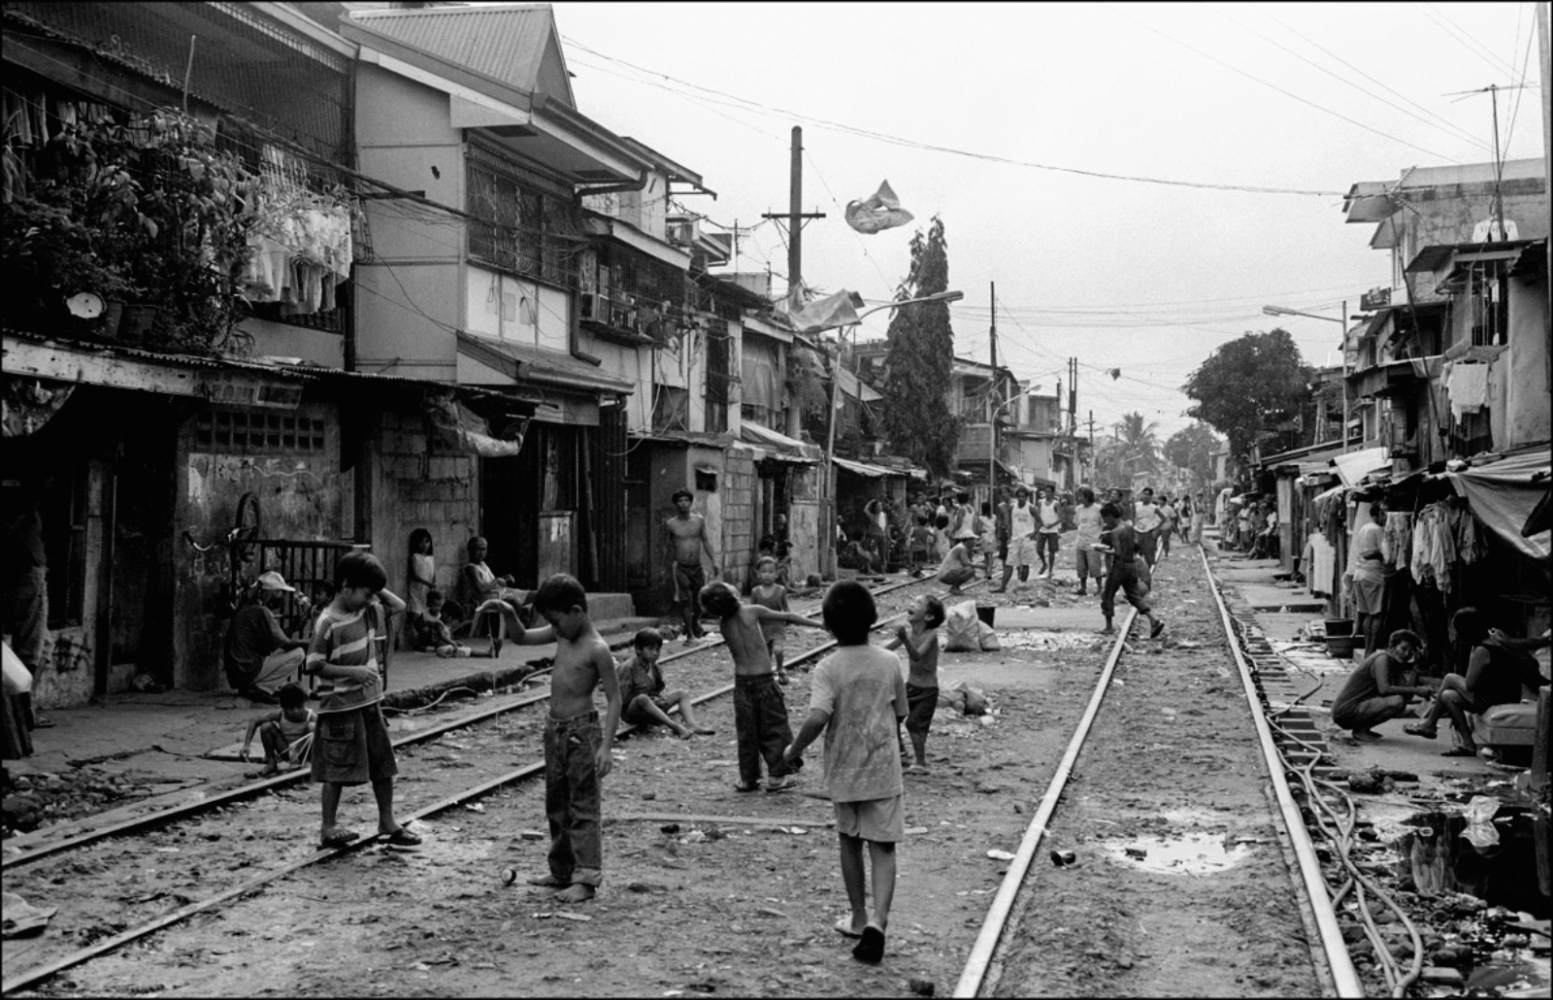 Kids Playing on Tracks, Laong-Laan-St. Sampaloc, Manila, Philippines, November 2005